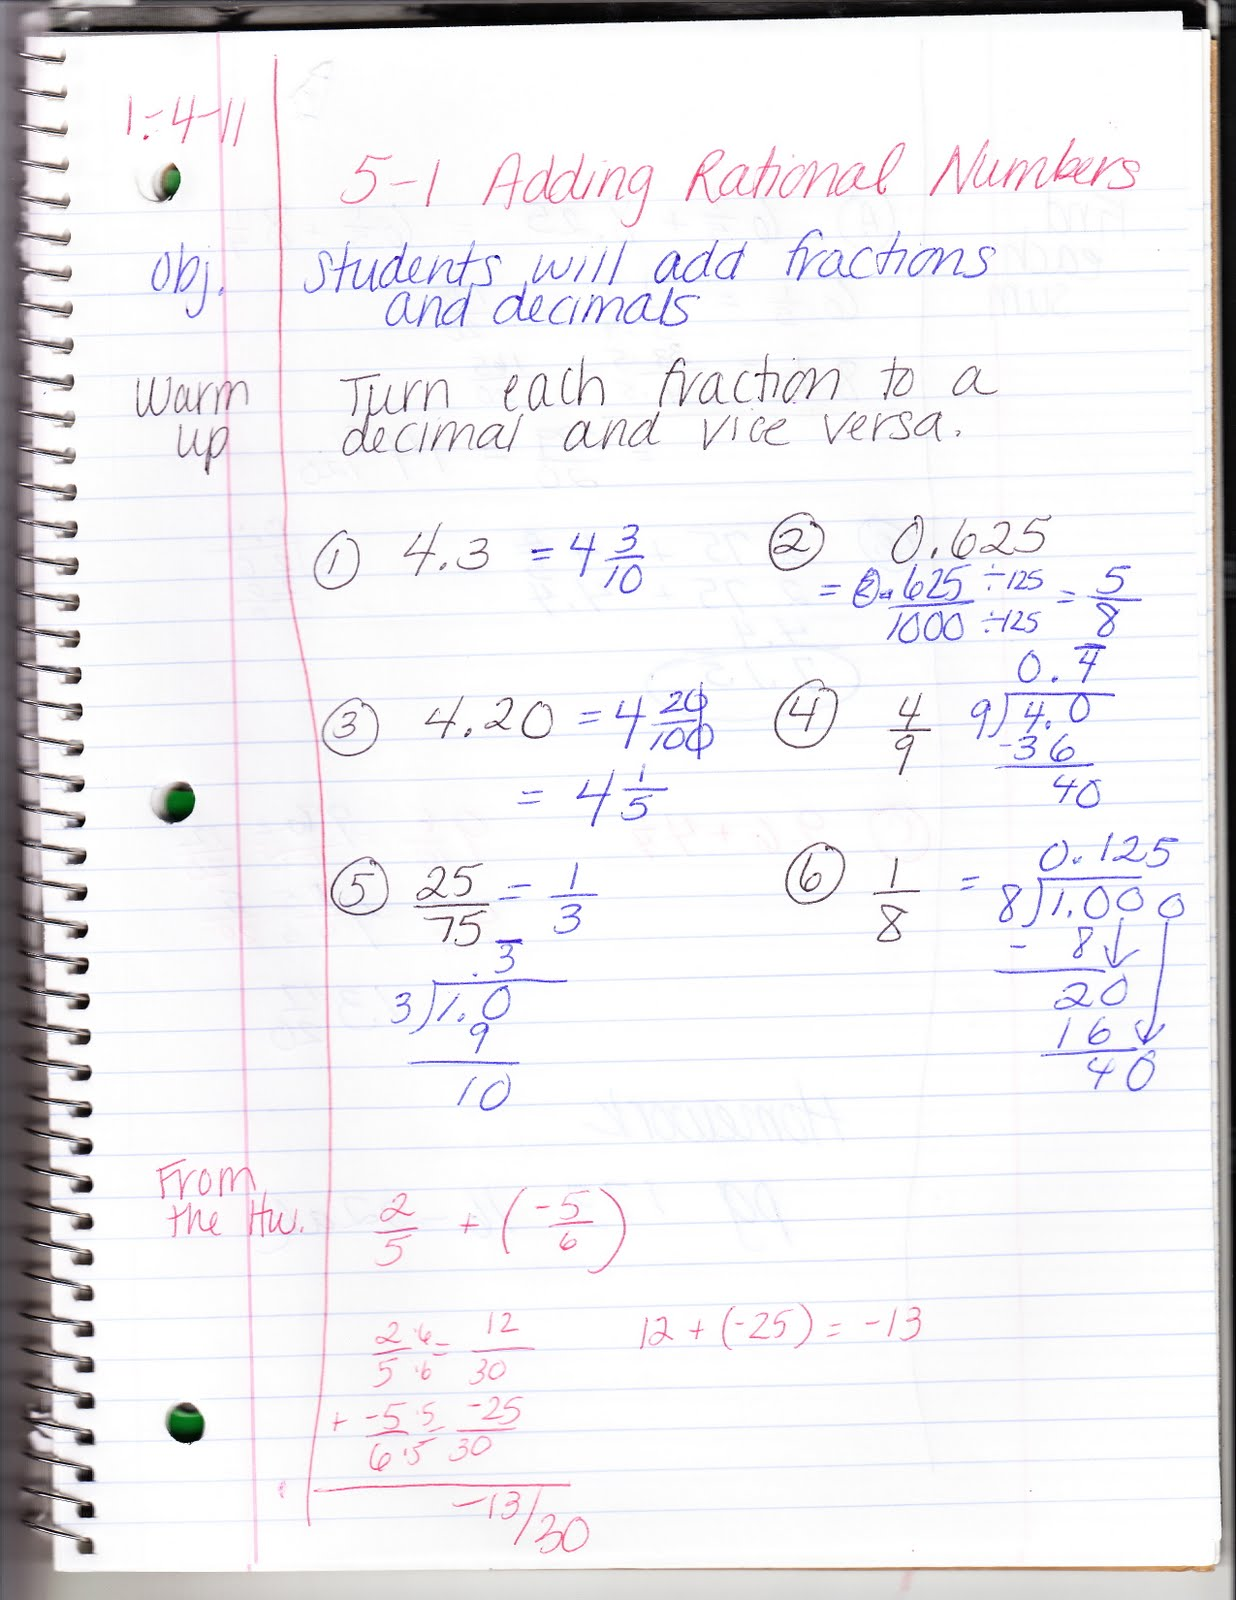 Ms Jean S Algebra Readiness Blog 5 1 Adding Rational Numbers